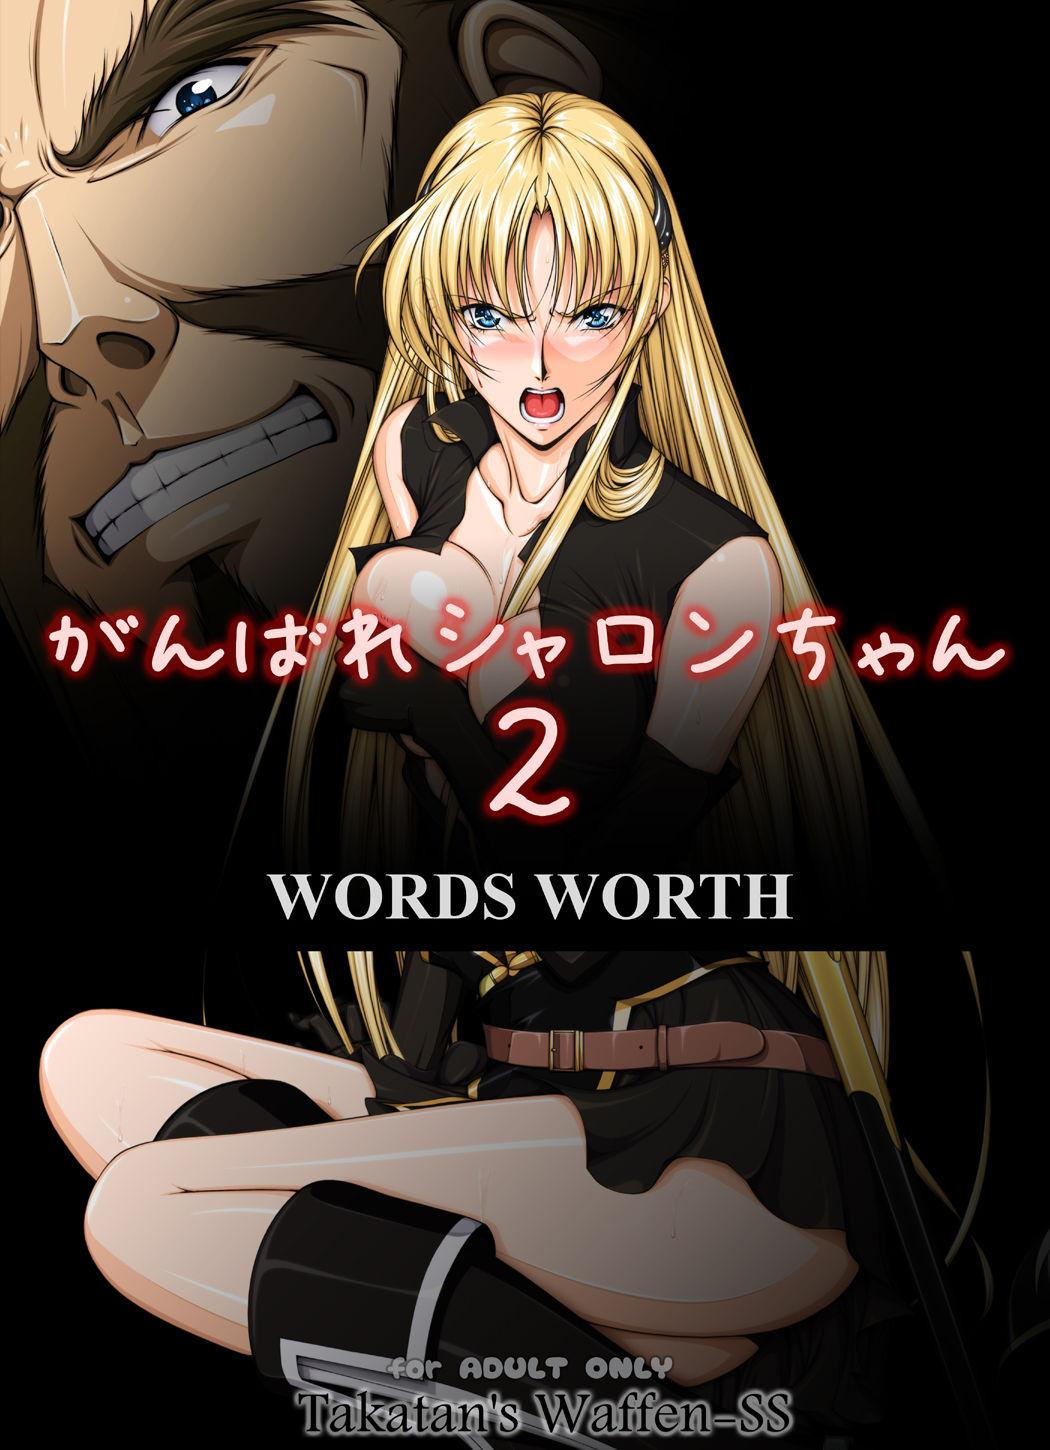 [Takatan's Waffen-SS] Fight, Sharon! 2 [Deluxe Edition] (Words Worth) +omake 55